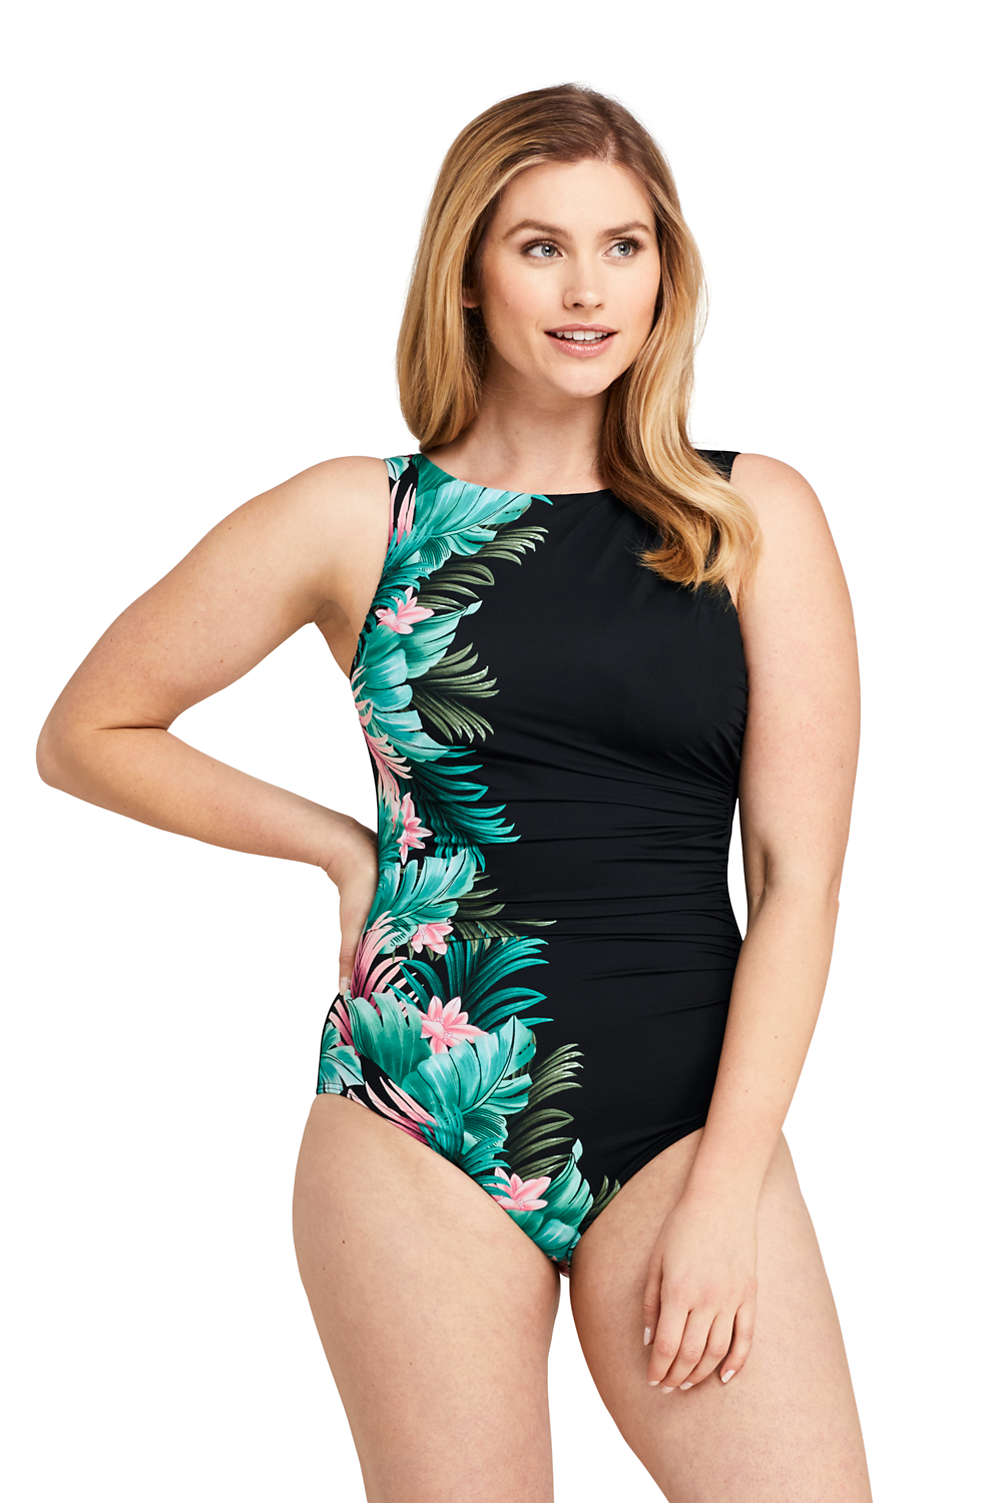 4bb12c25d34a0 Women's Slender High-neck One Piece Swimsuit with Tummy Control Print from  Lands' End